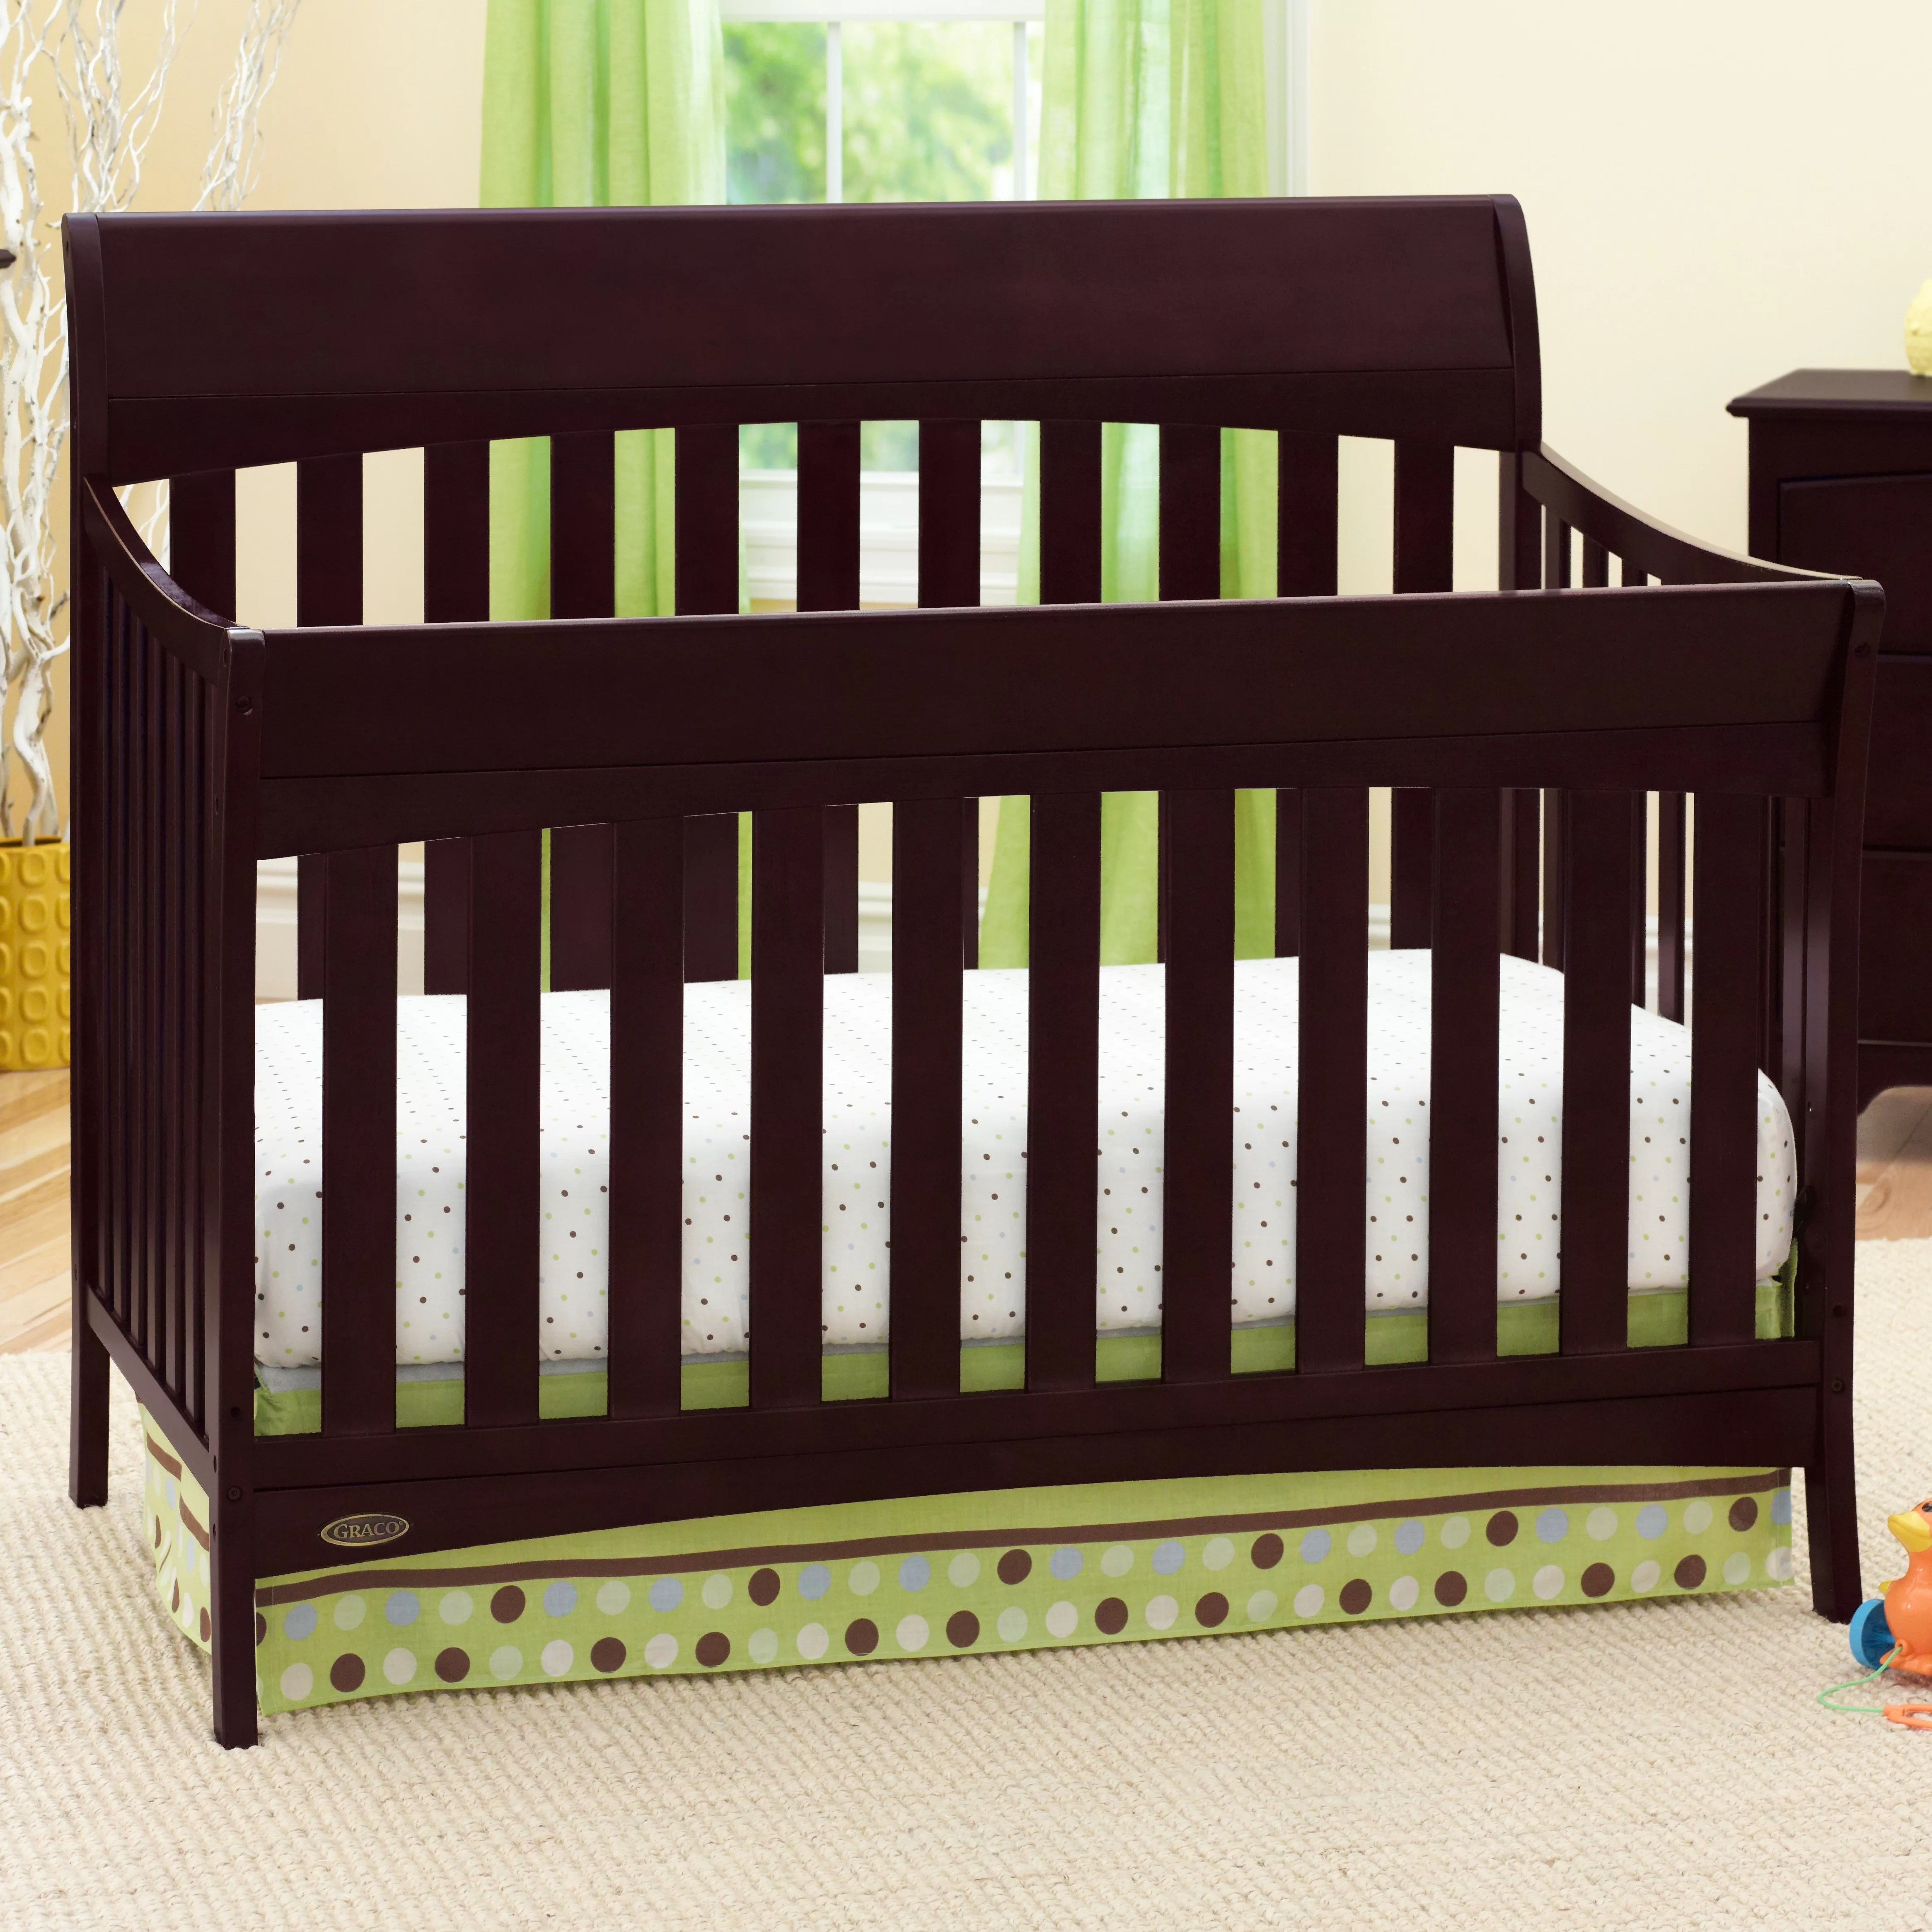 graco high chair 4 in 1 target.com covers rory convertible crib and reviews wayfair